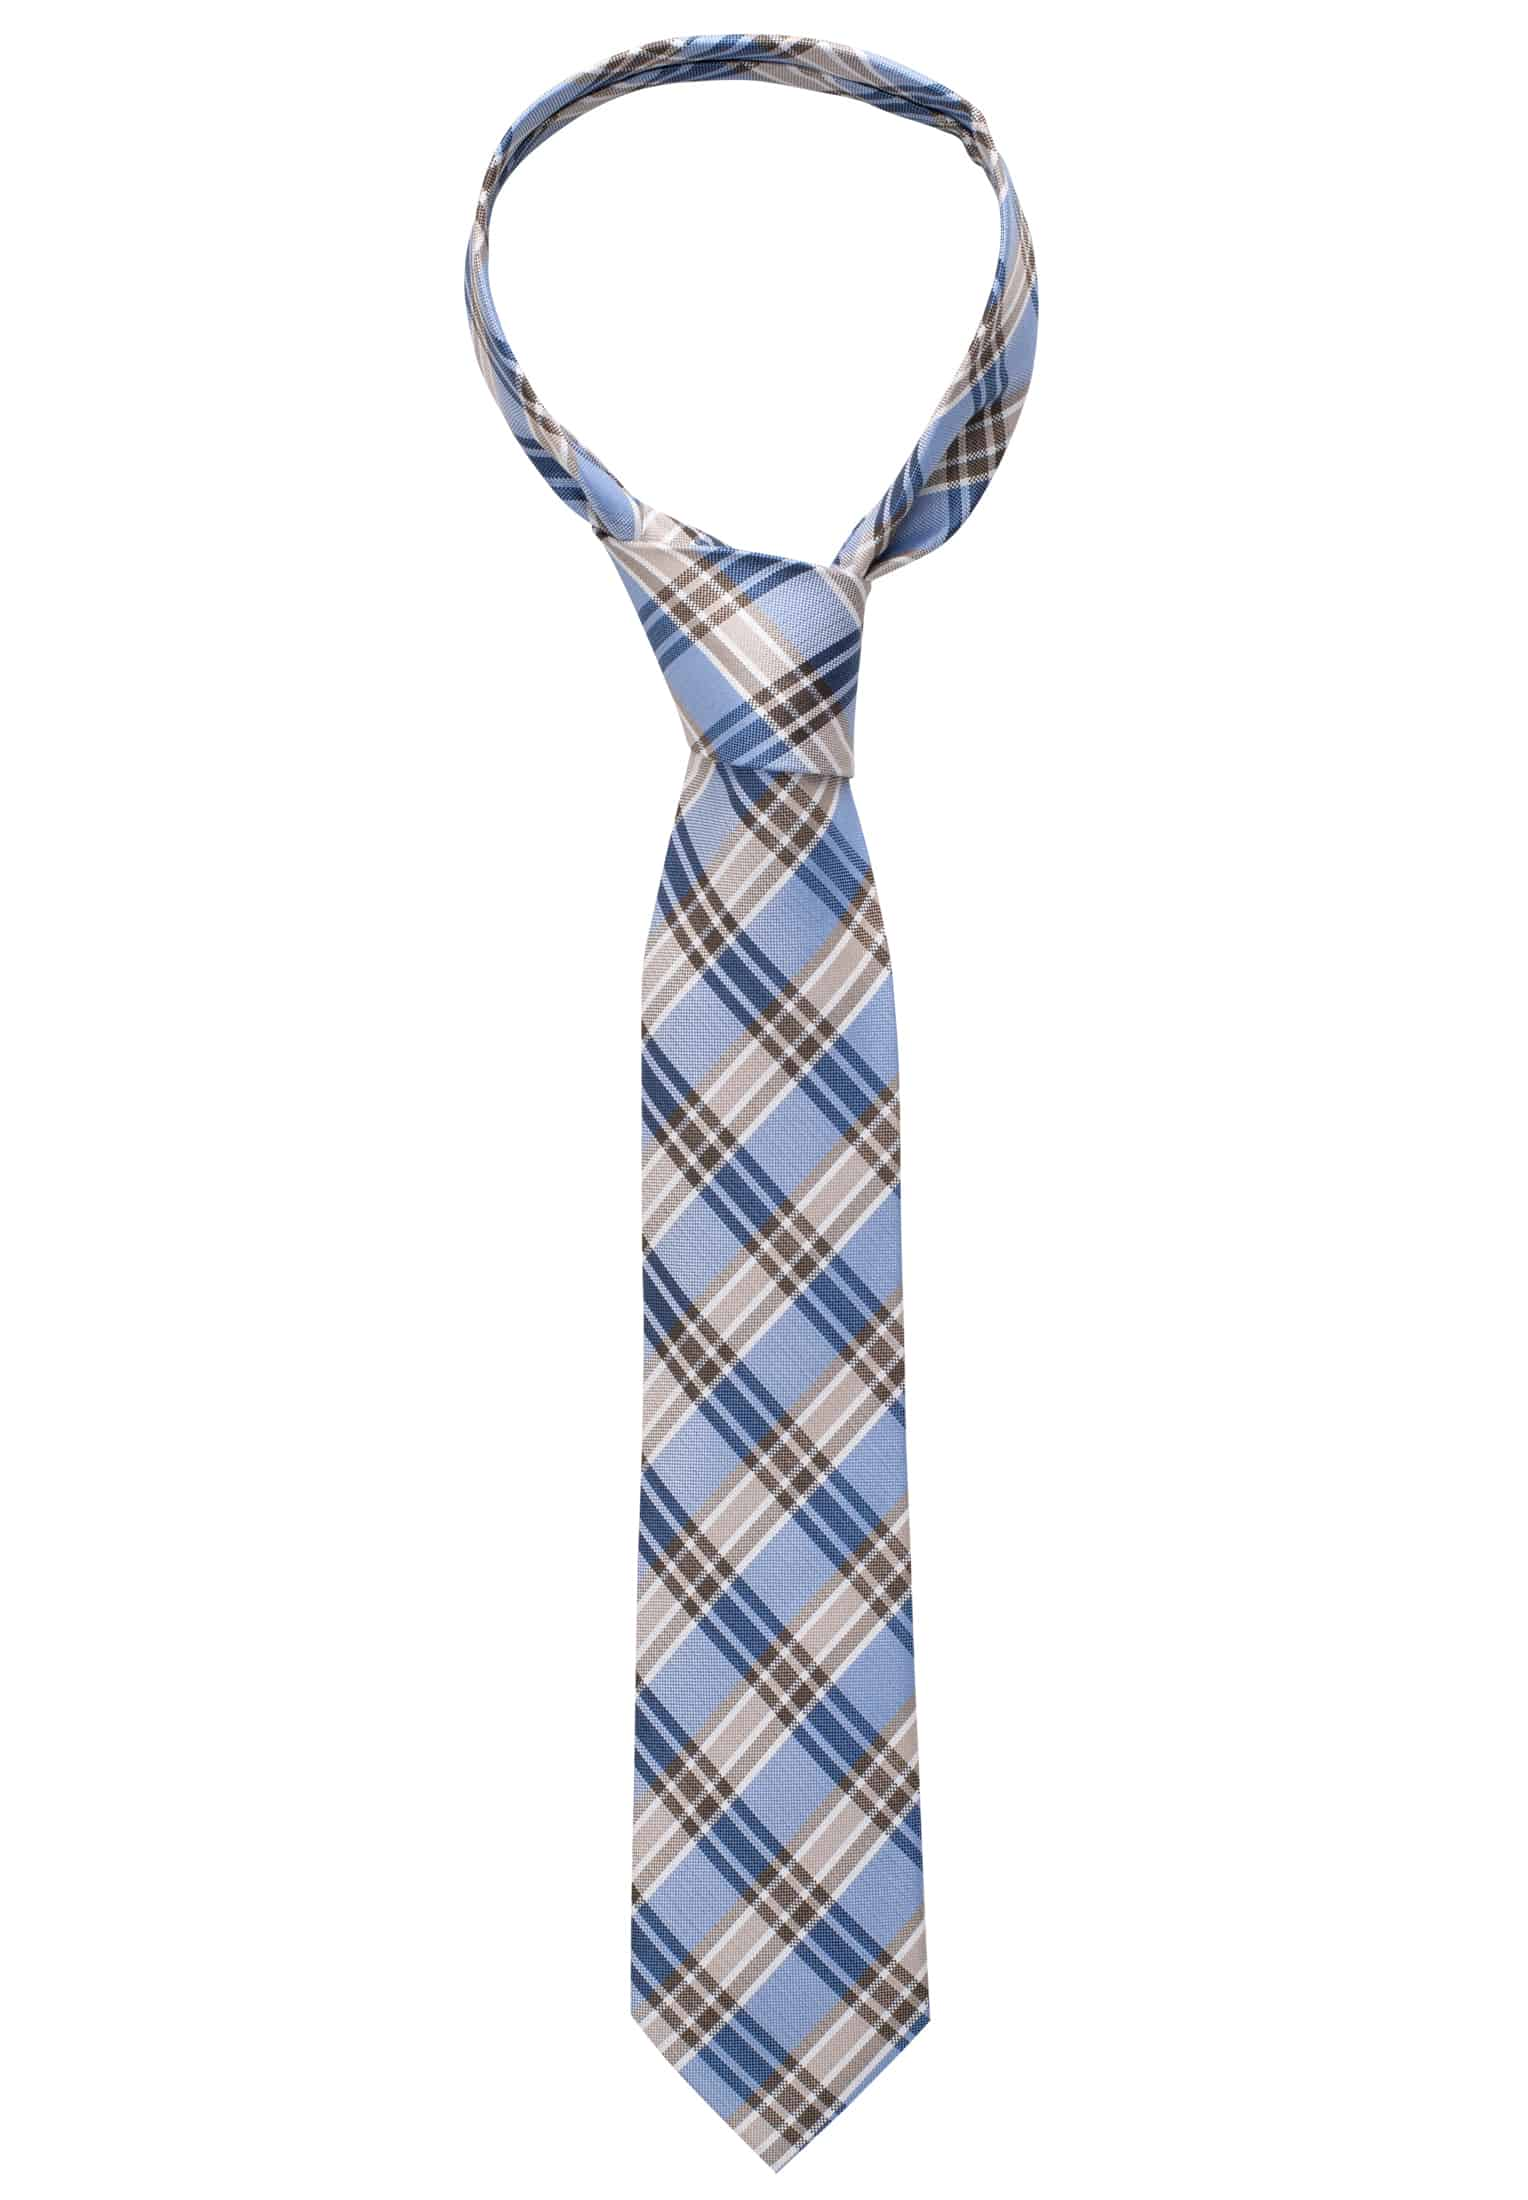 Clothing & Accessories ETERNA TIE BROWN/BLUE CHECKED